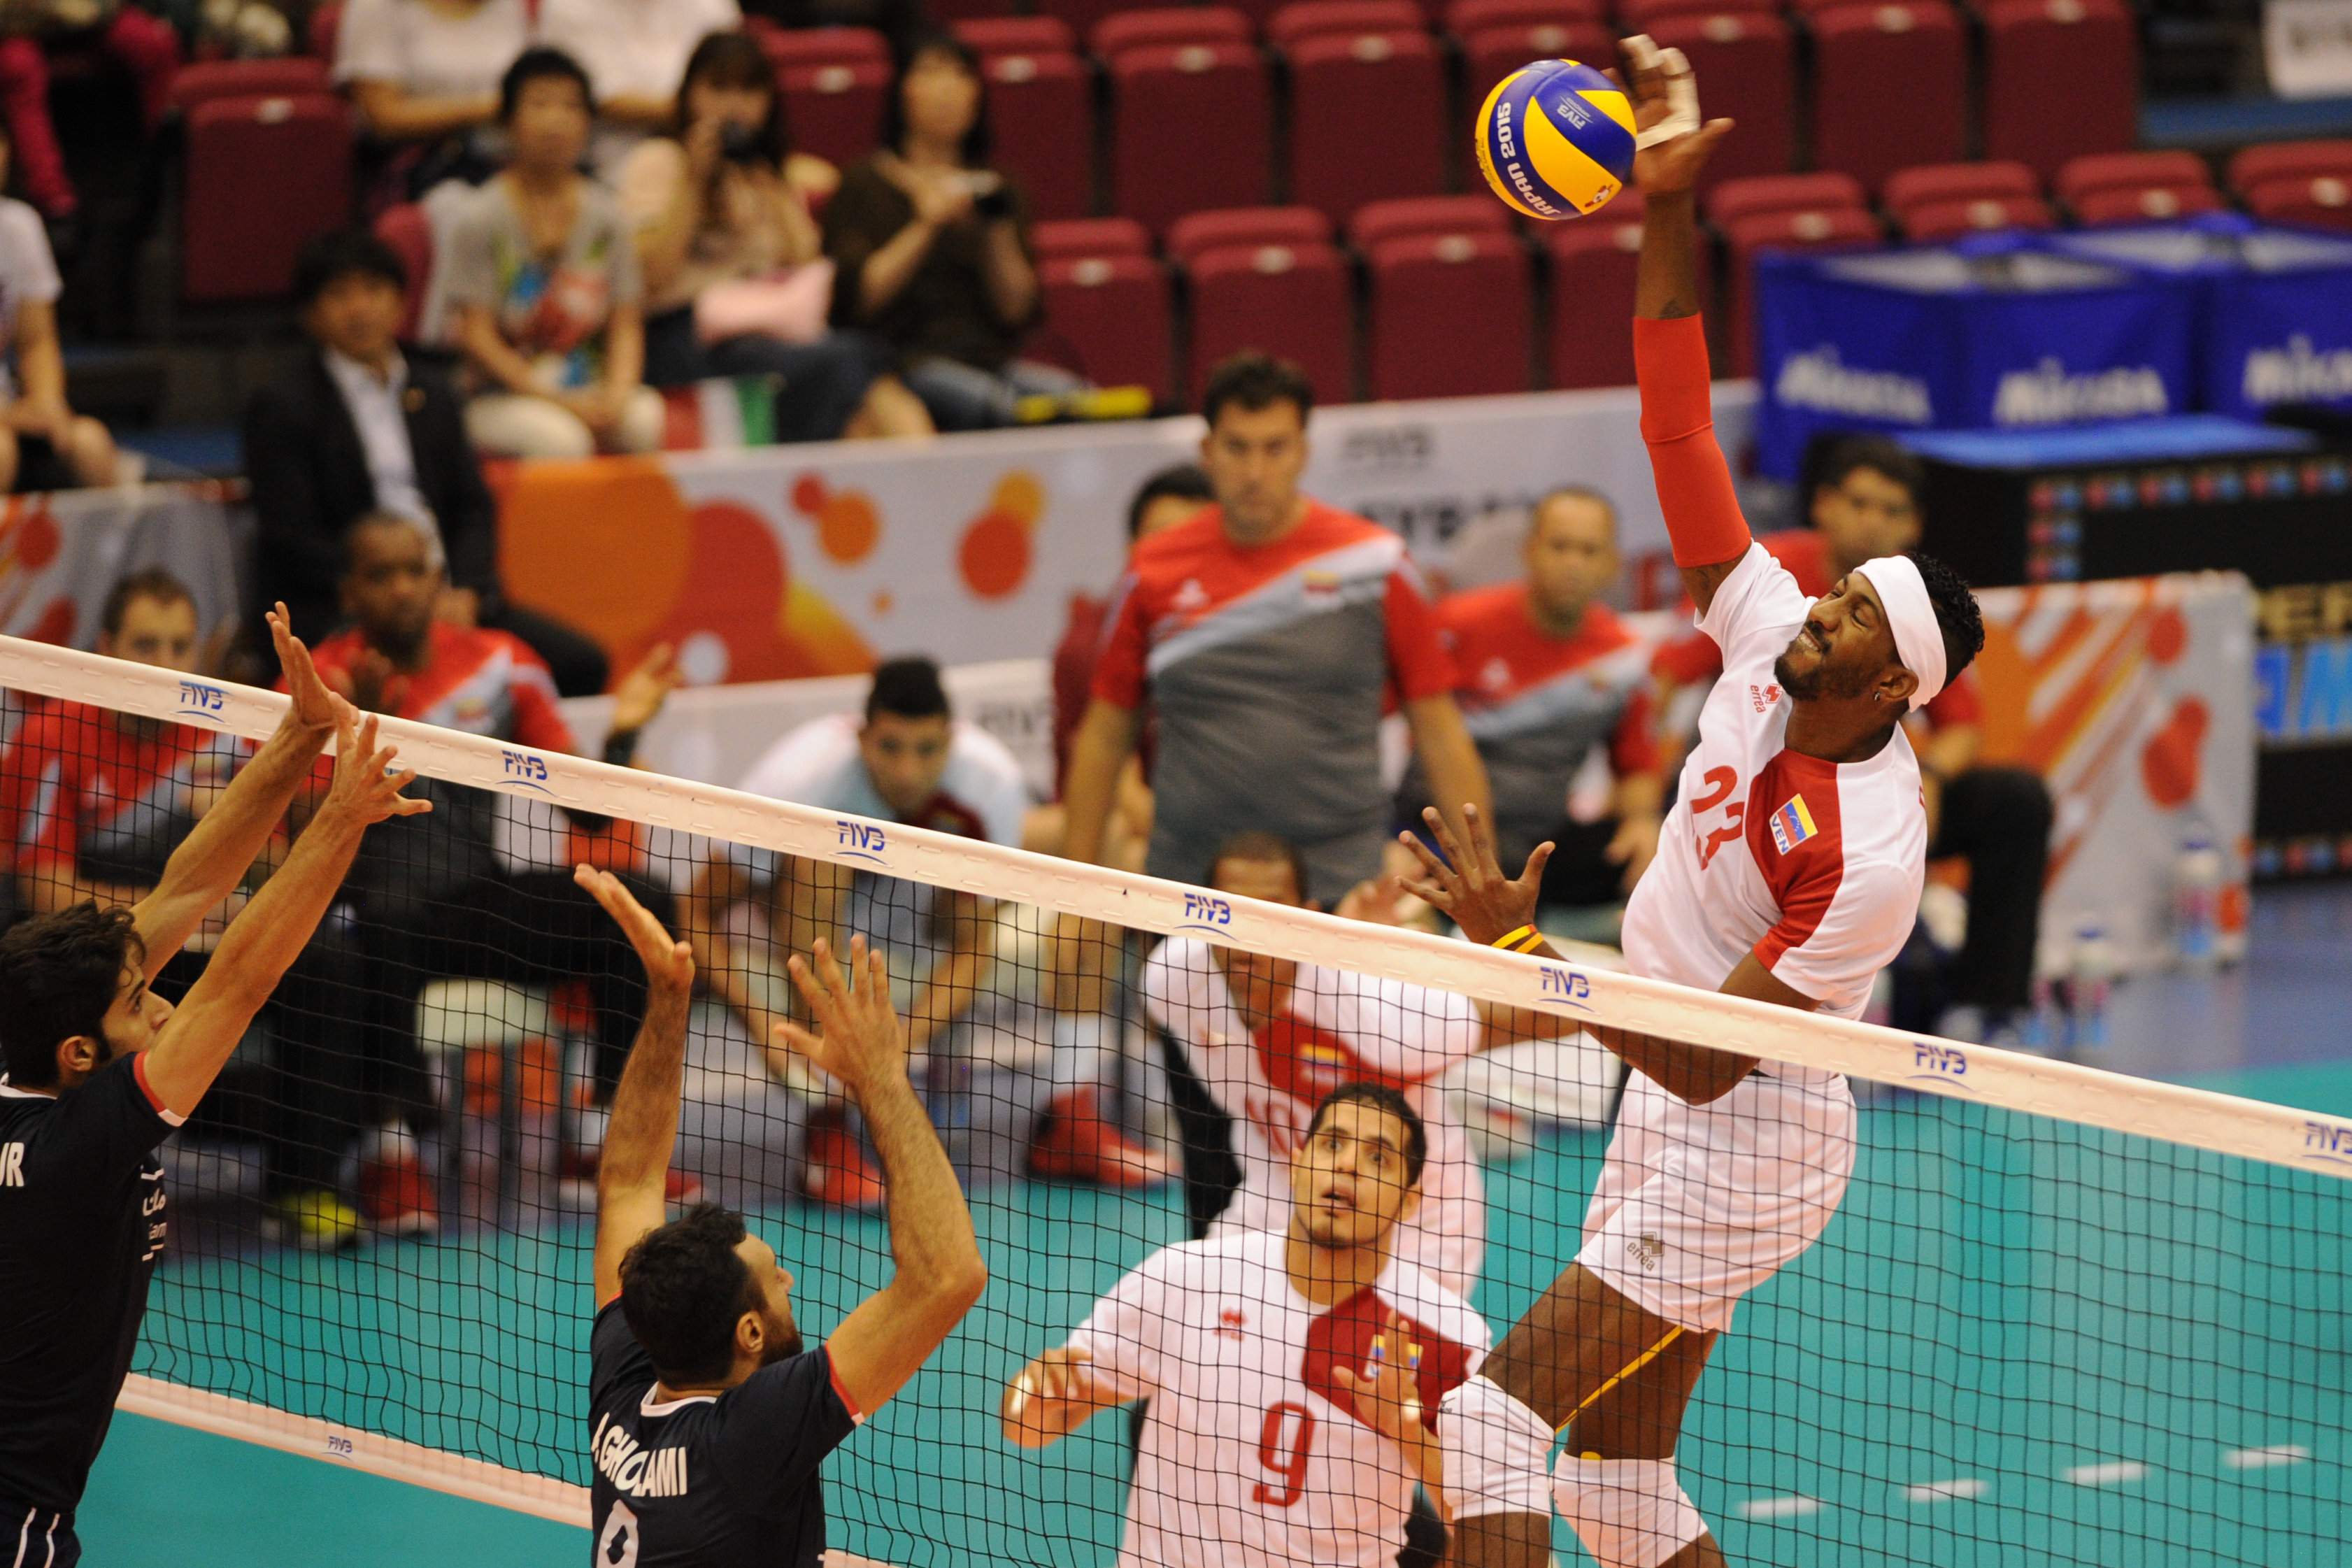 http://www.fivb.org/Vis2009/Images/GetImage.asmx?No=201516983&width=900&height=600&stretch=uniform